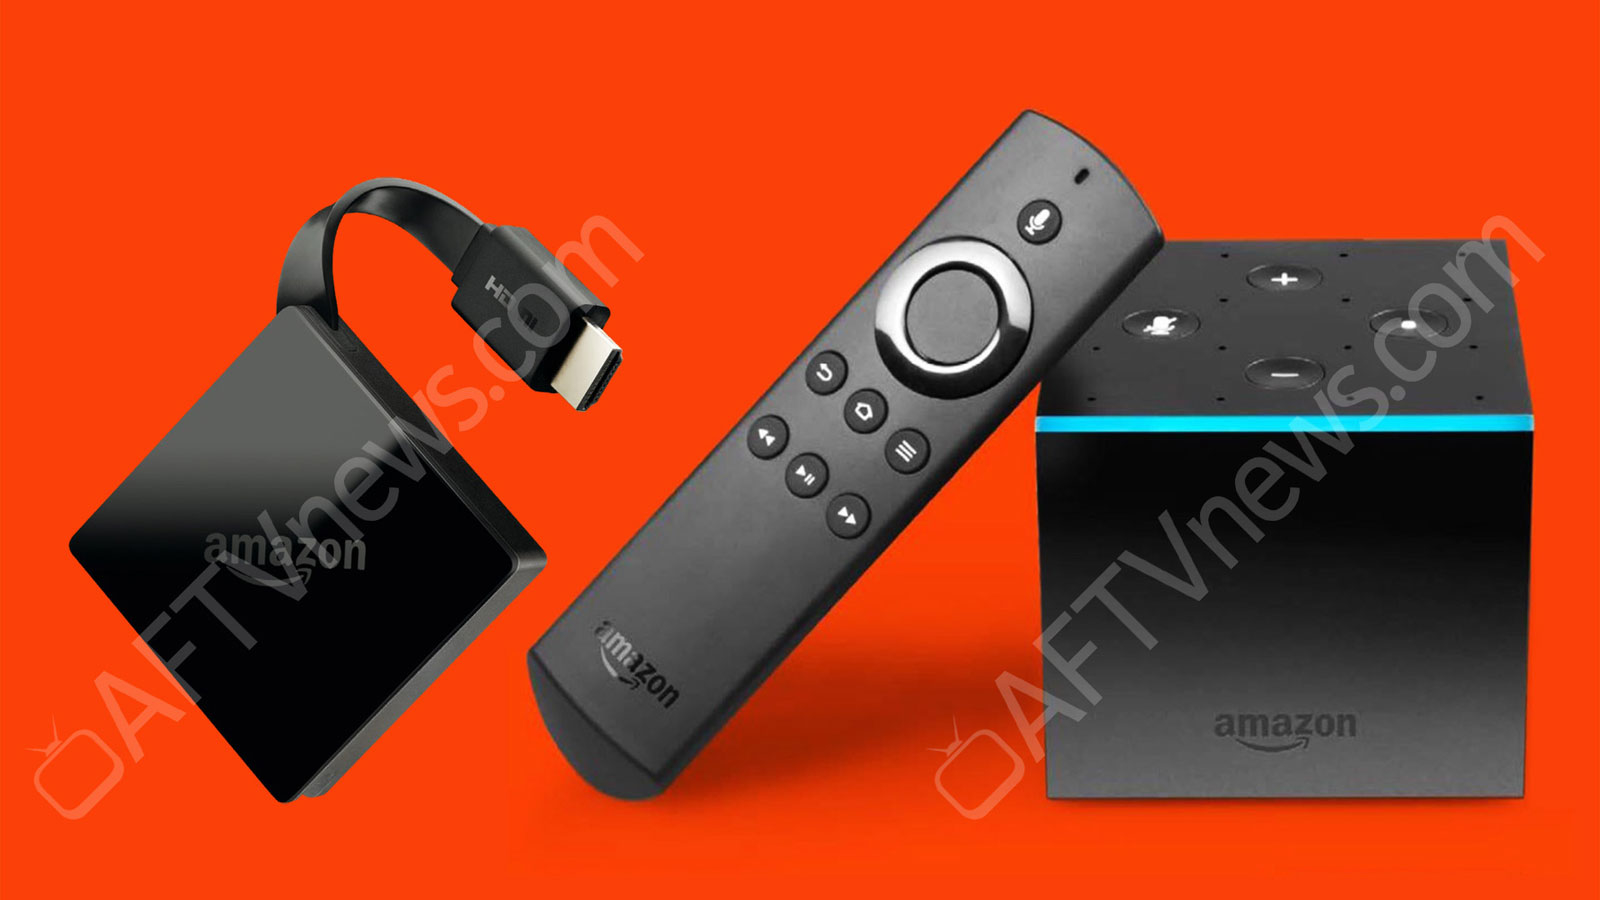 Amazon confirms the existence of a 'Fire TV Cube'